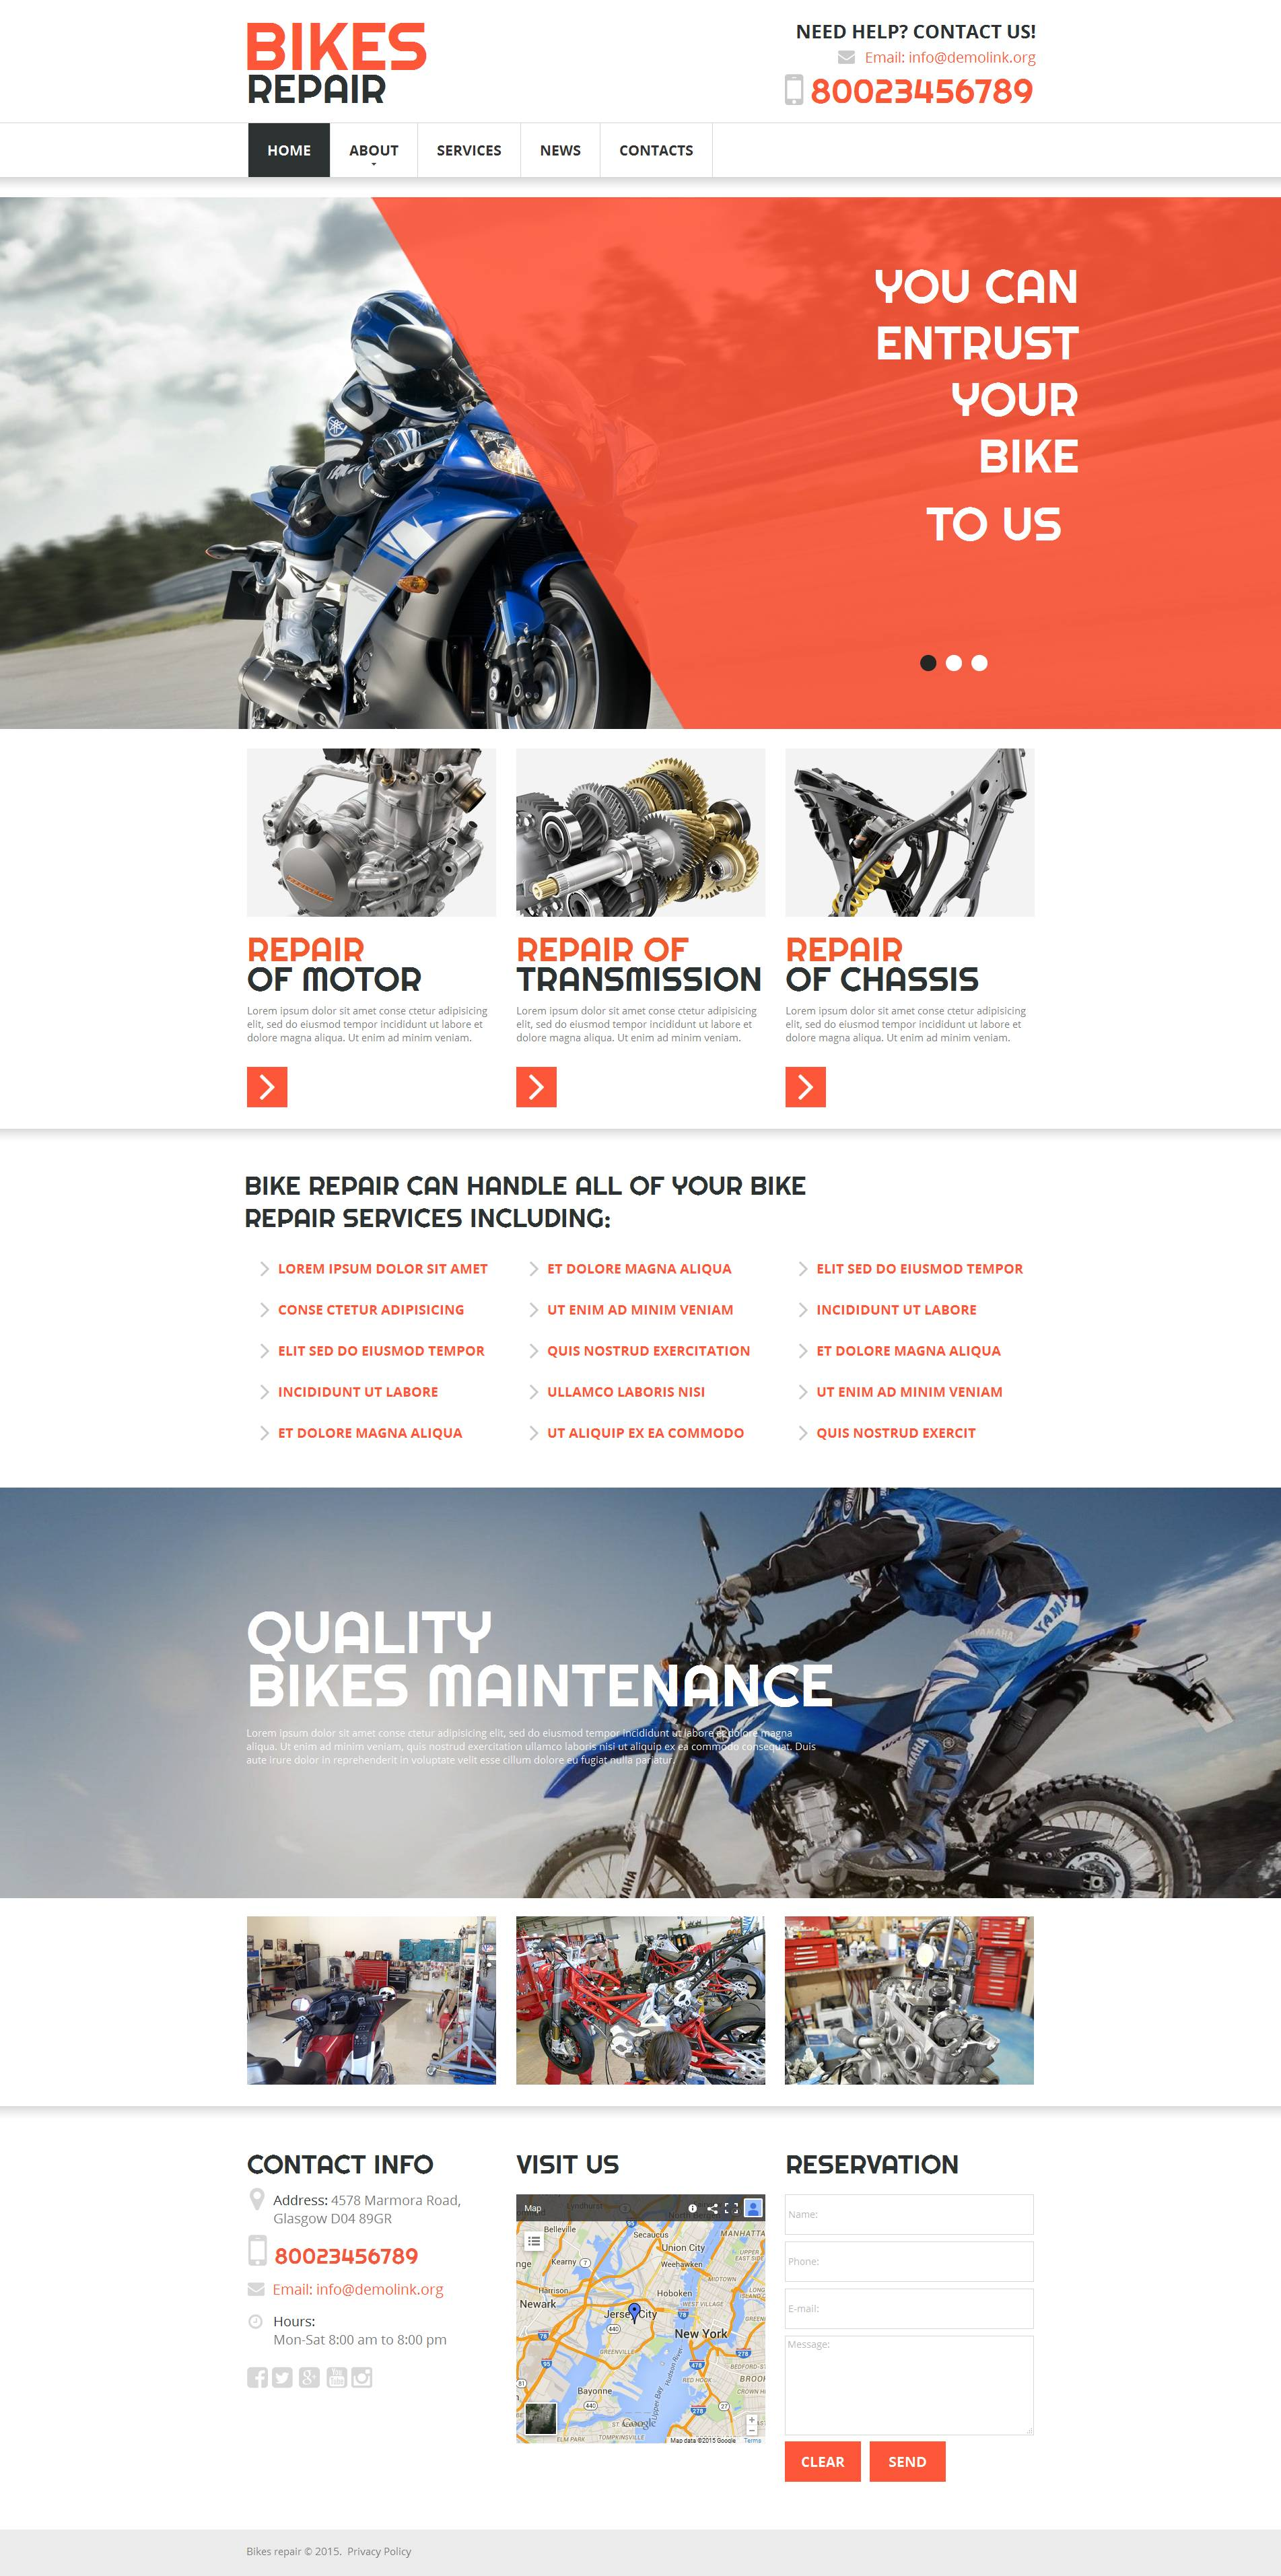 The Bikes Repair Moto Moto CMS HTML Design 53636, one of the best Moto CMS HTML templates of its kind (cars), also known as Bikes Repair moto Moto CMS HTML template, repair Moto CMS HTML template, recovery Moto CMS HTML template, repairs Moto CMS HTML template, automobile Moto CMS HTML template, auto repair Moto CMS HTML template, maintenance Moto CMS HTML template, service care Moto CMS HTML template, advice Moto CMS HTML template, station and related with Bikes Repair moto, repair, recovery, repairs, automobile, auto repair, maintenance, service care, advice, station, etc.